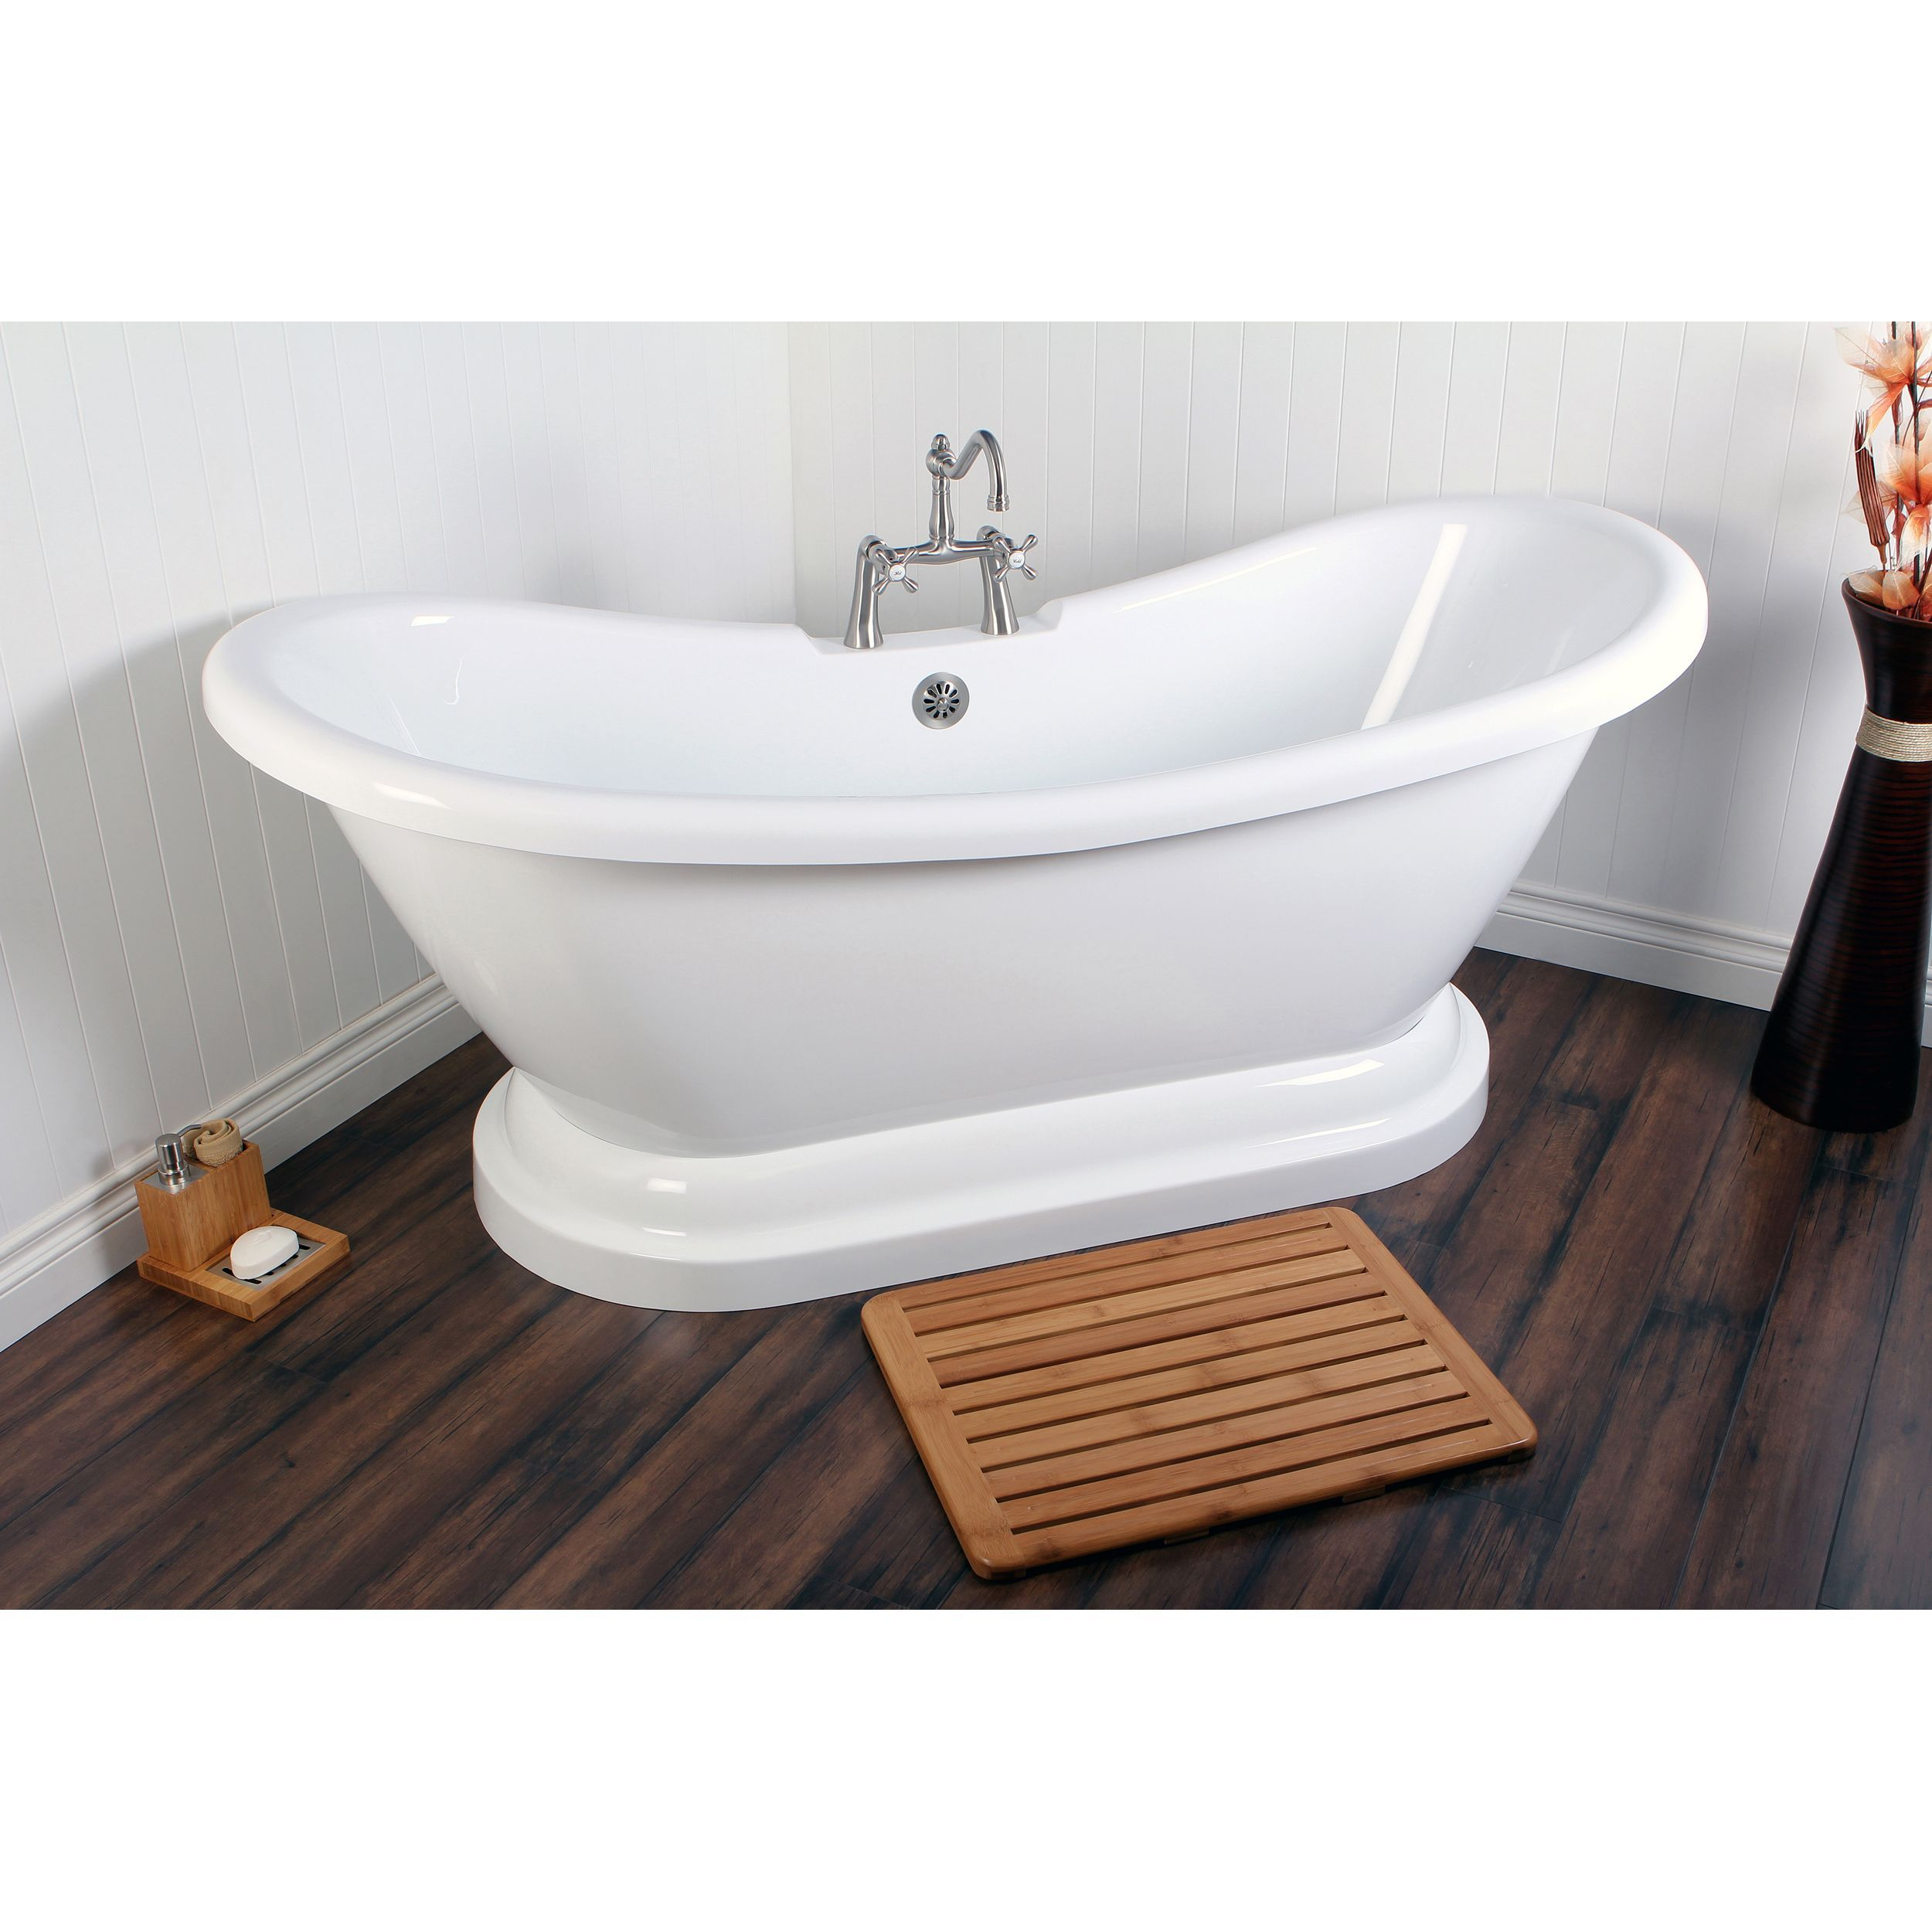 Contemporary Double Slipper 69-inch Pedestal Bathtub by Kingston ...